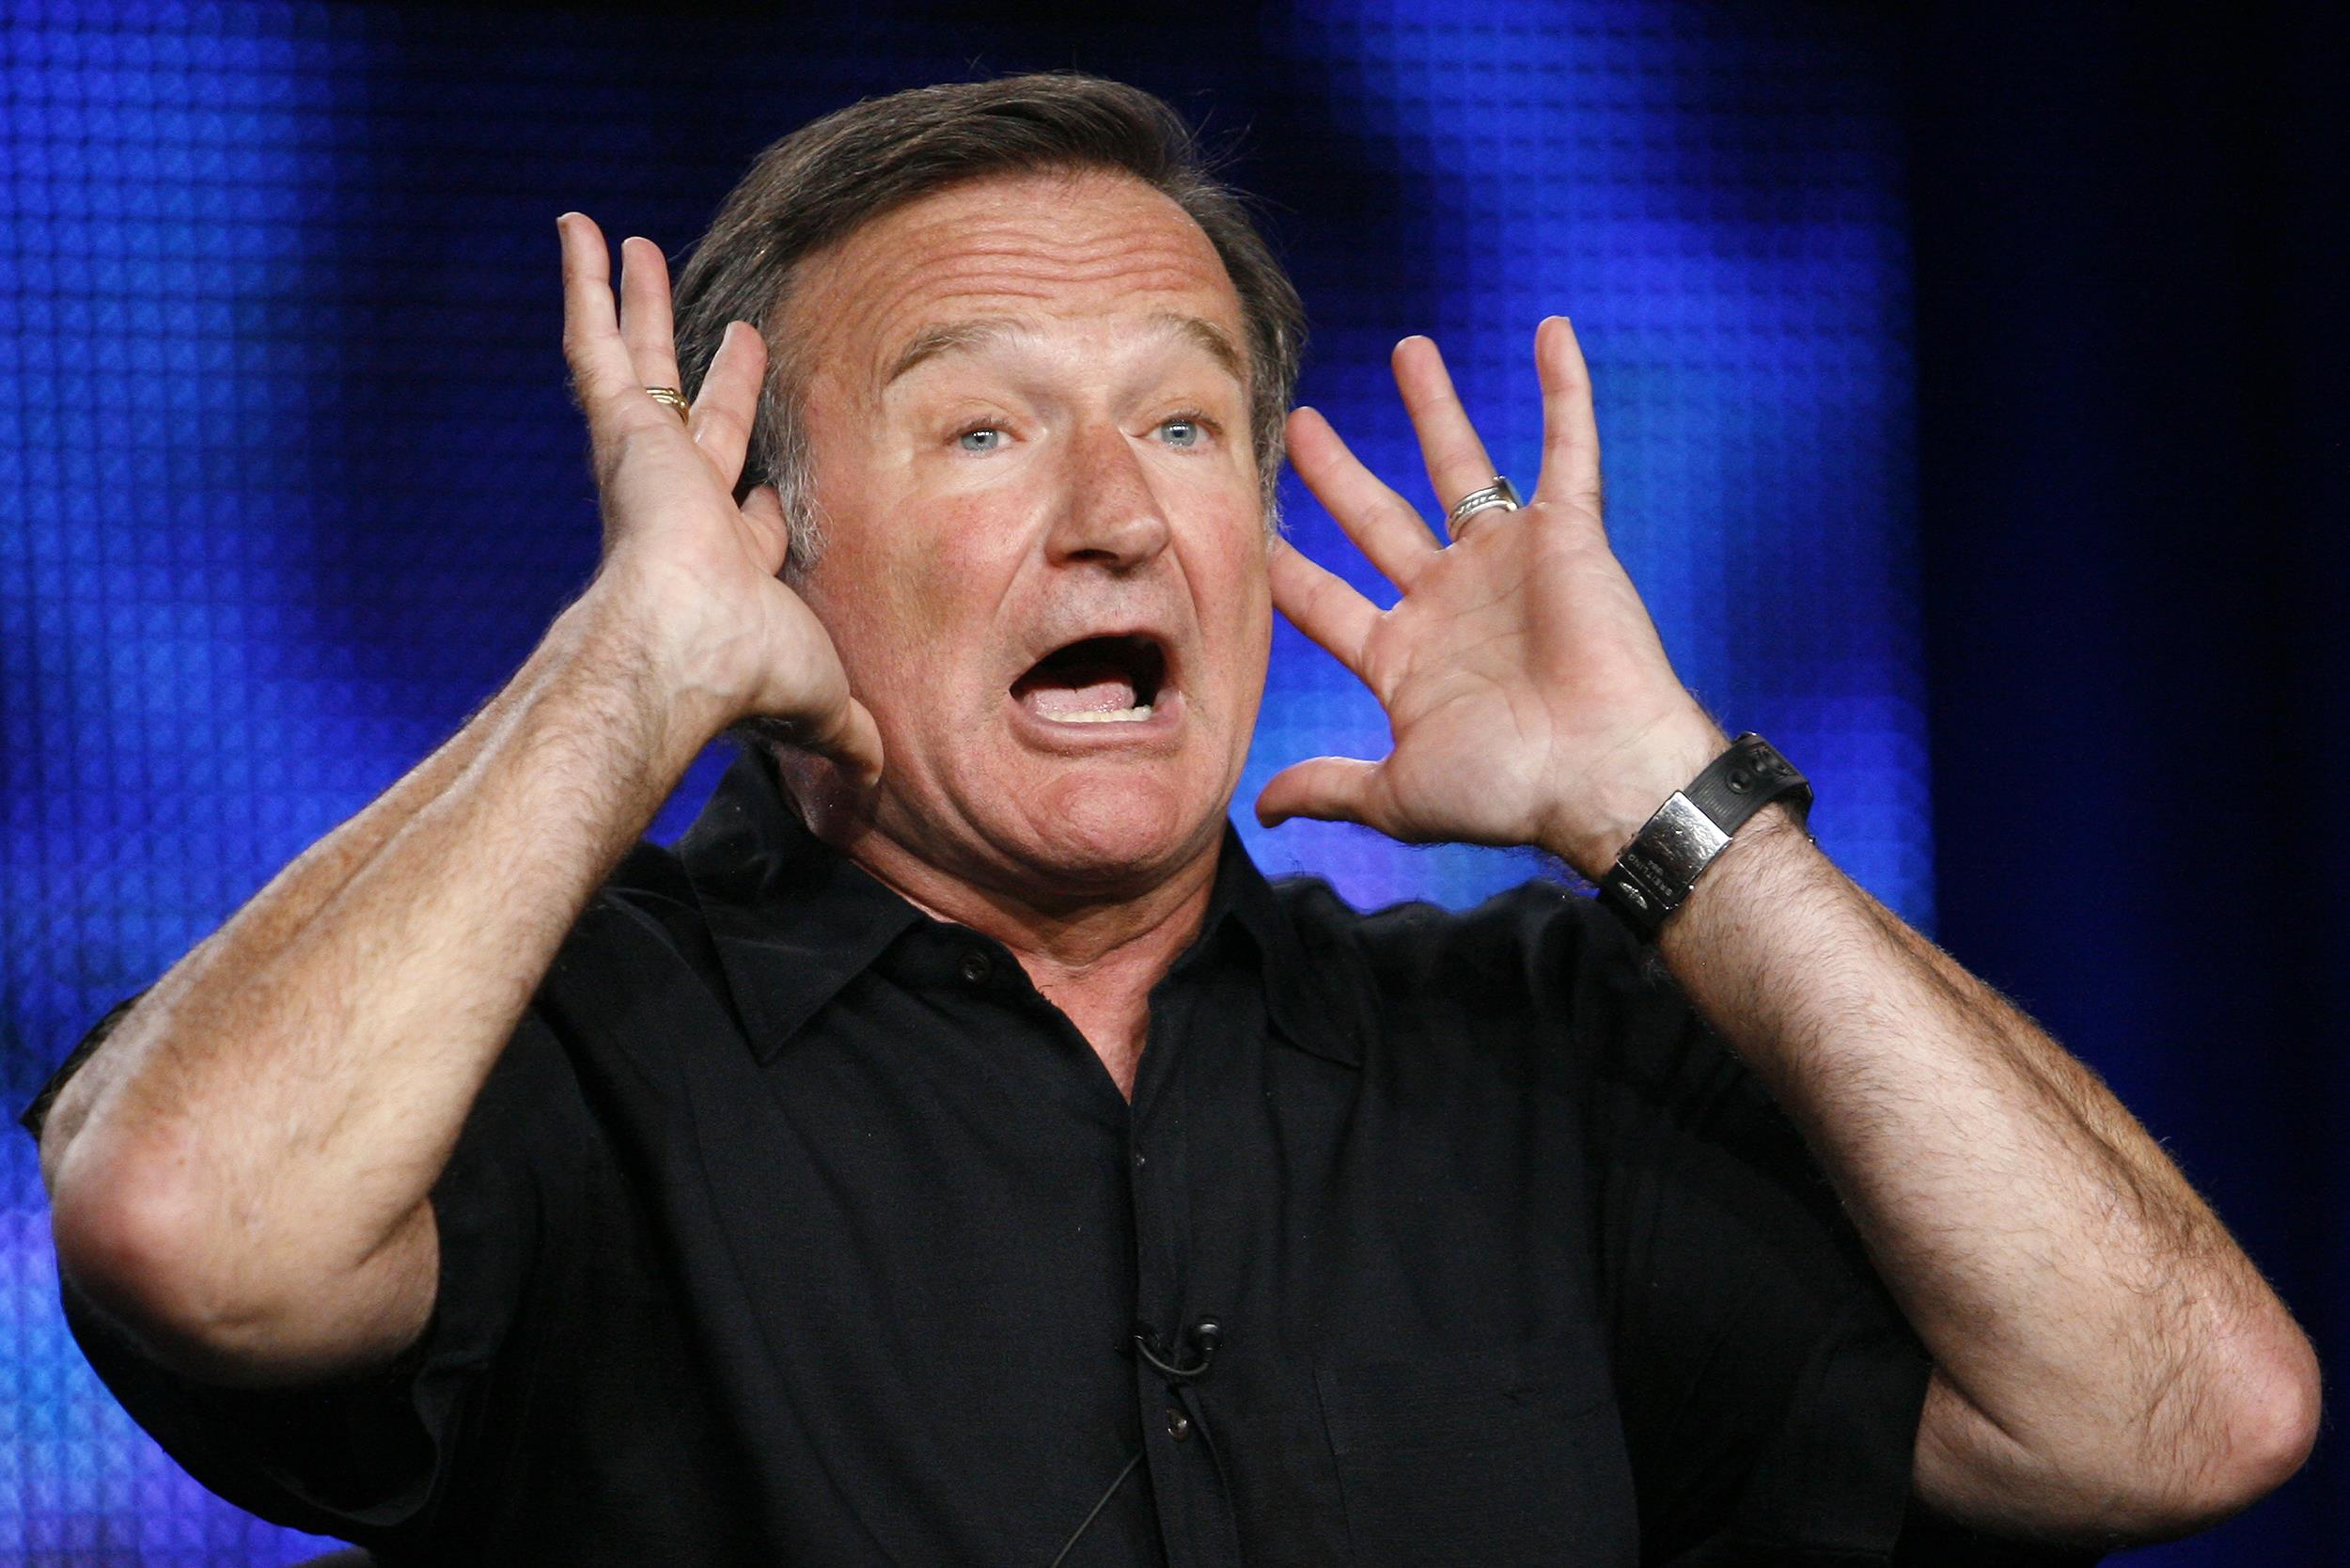 Robin Williams gestures during a panel discussion for his upcoming HBO show